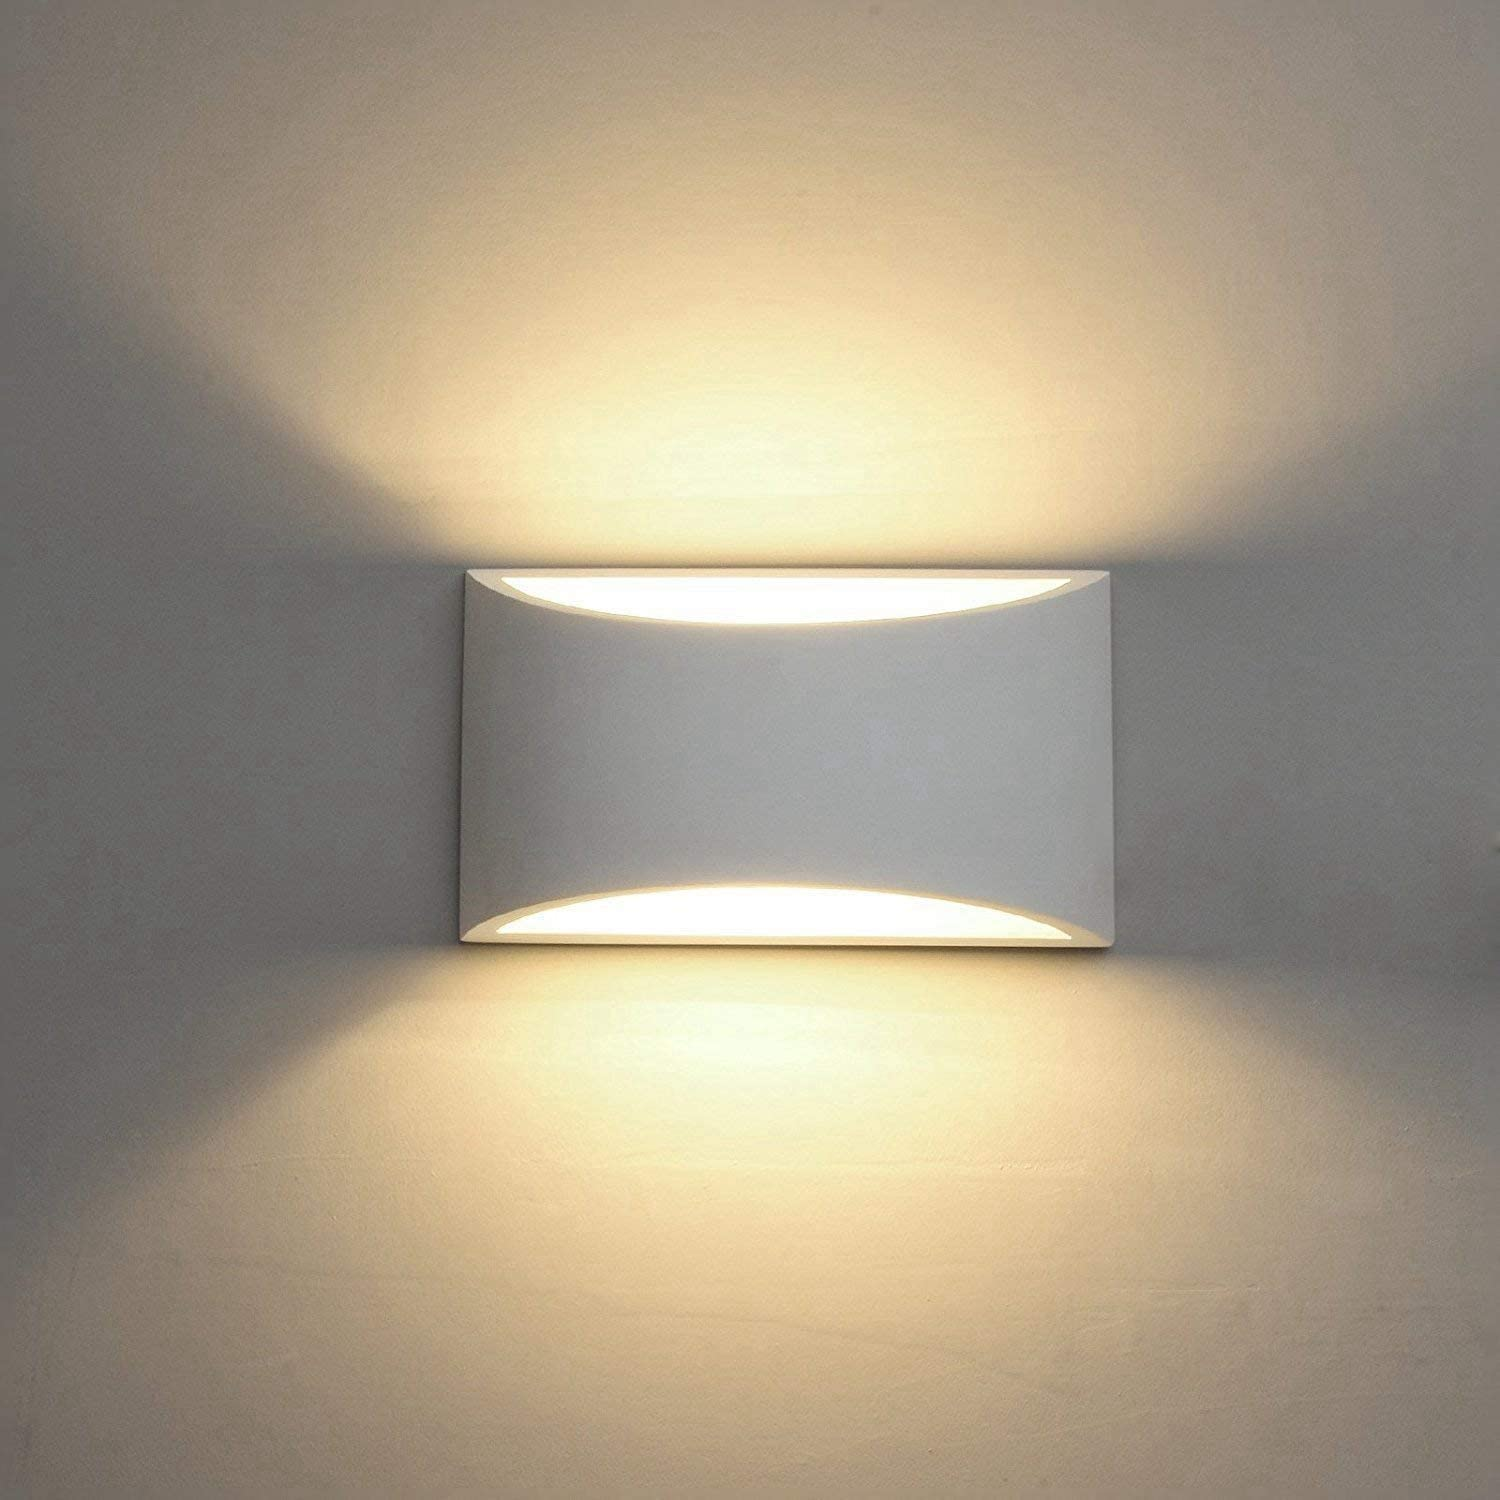 Modern LED Wall Sconce Lighting Fixture Lamps 10W Warm White 21000K Up and  Down Indoor Plaster Wall Lamps for Living Room Bedroom Hallway Home Room